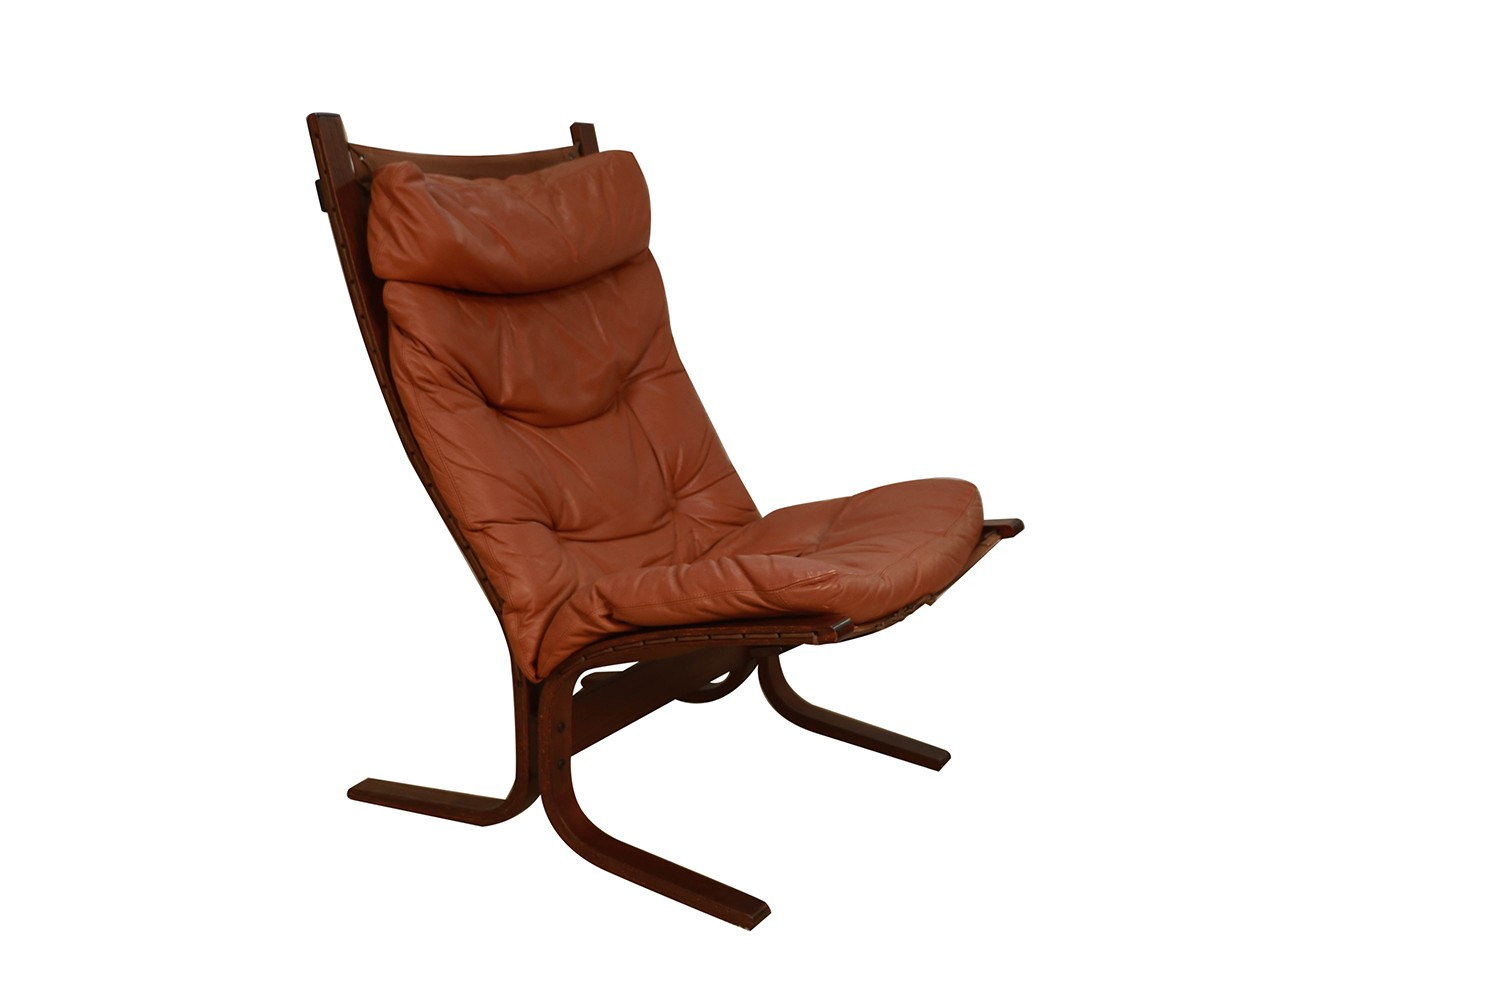 Swell Mid Century Siesta Leather Lounge Chair By Ingmar Relling For Westnofa Gmtry Best Dining Table And Chair Ideas Images Gmtryco